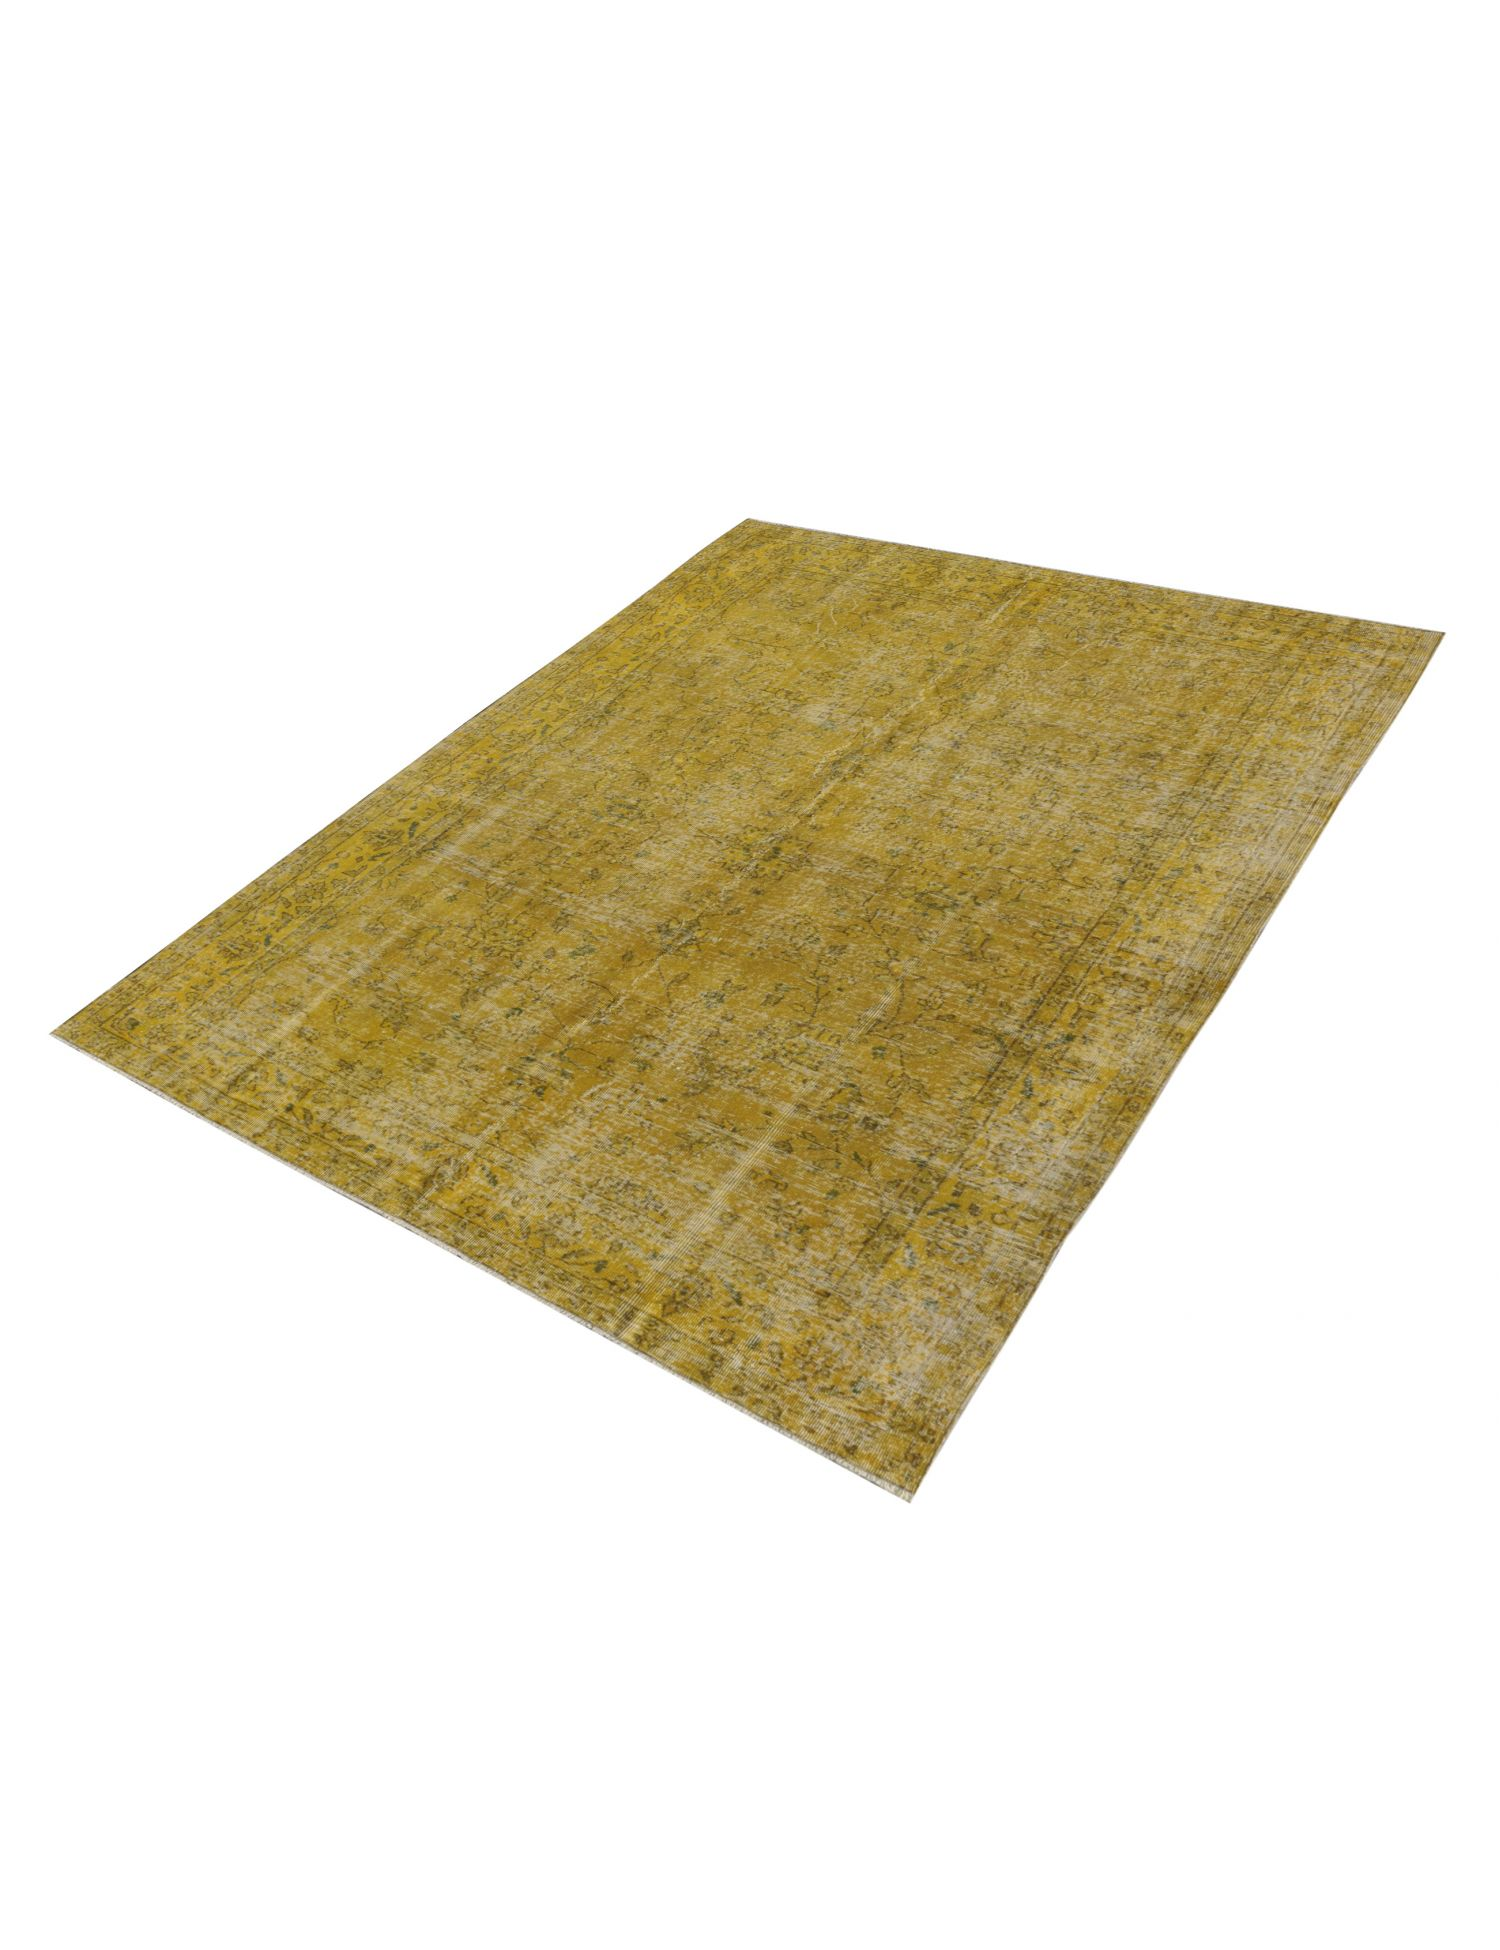 Vintage Carpet  yellow <br/>301 x 194 cm